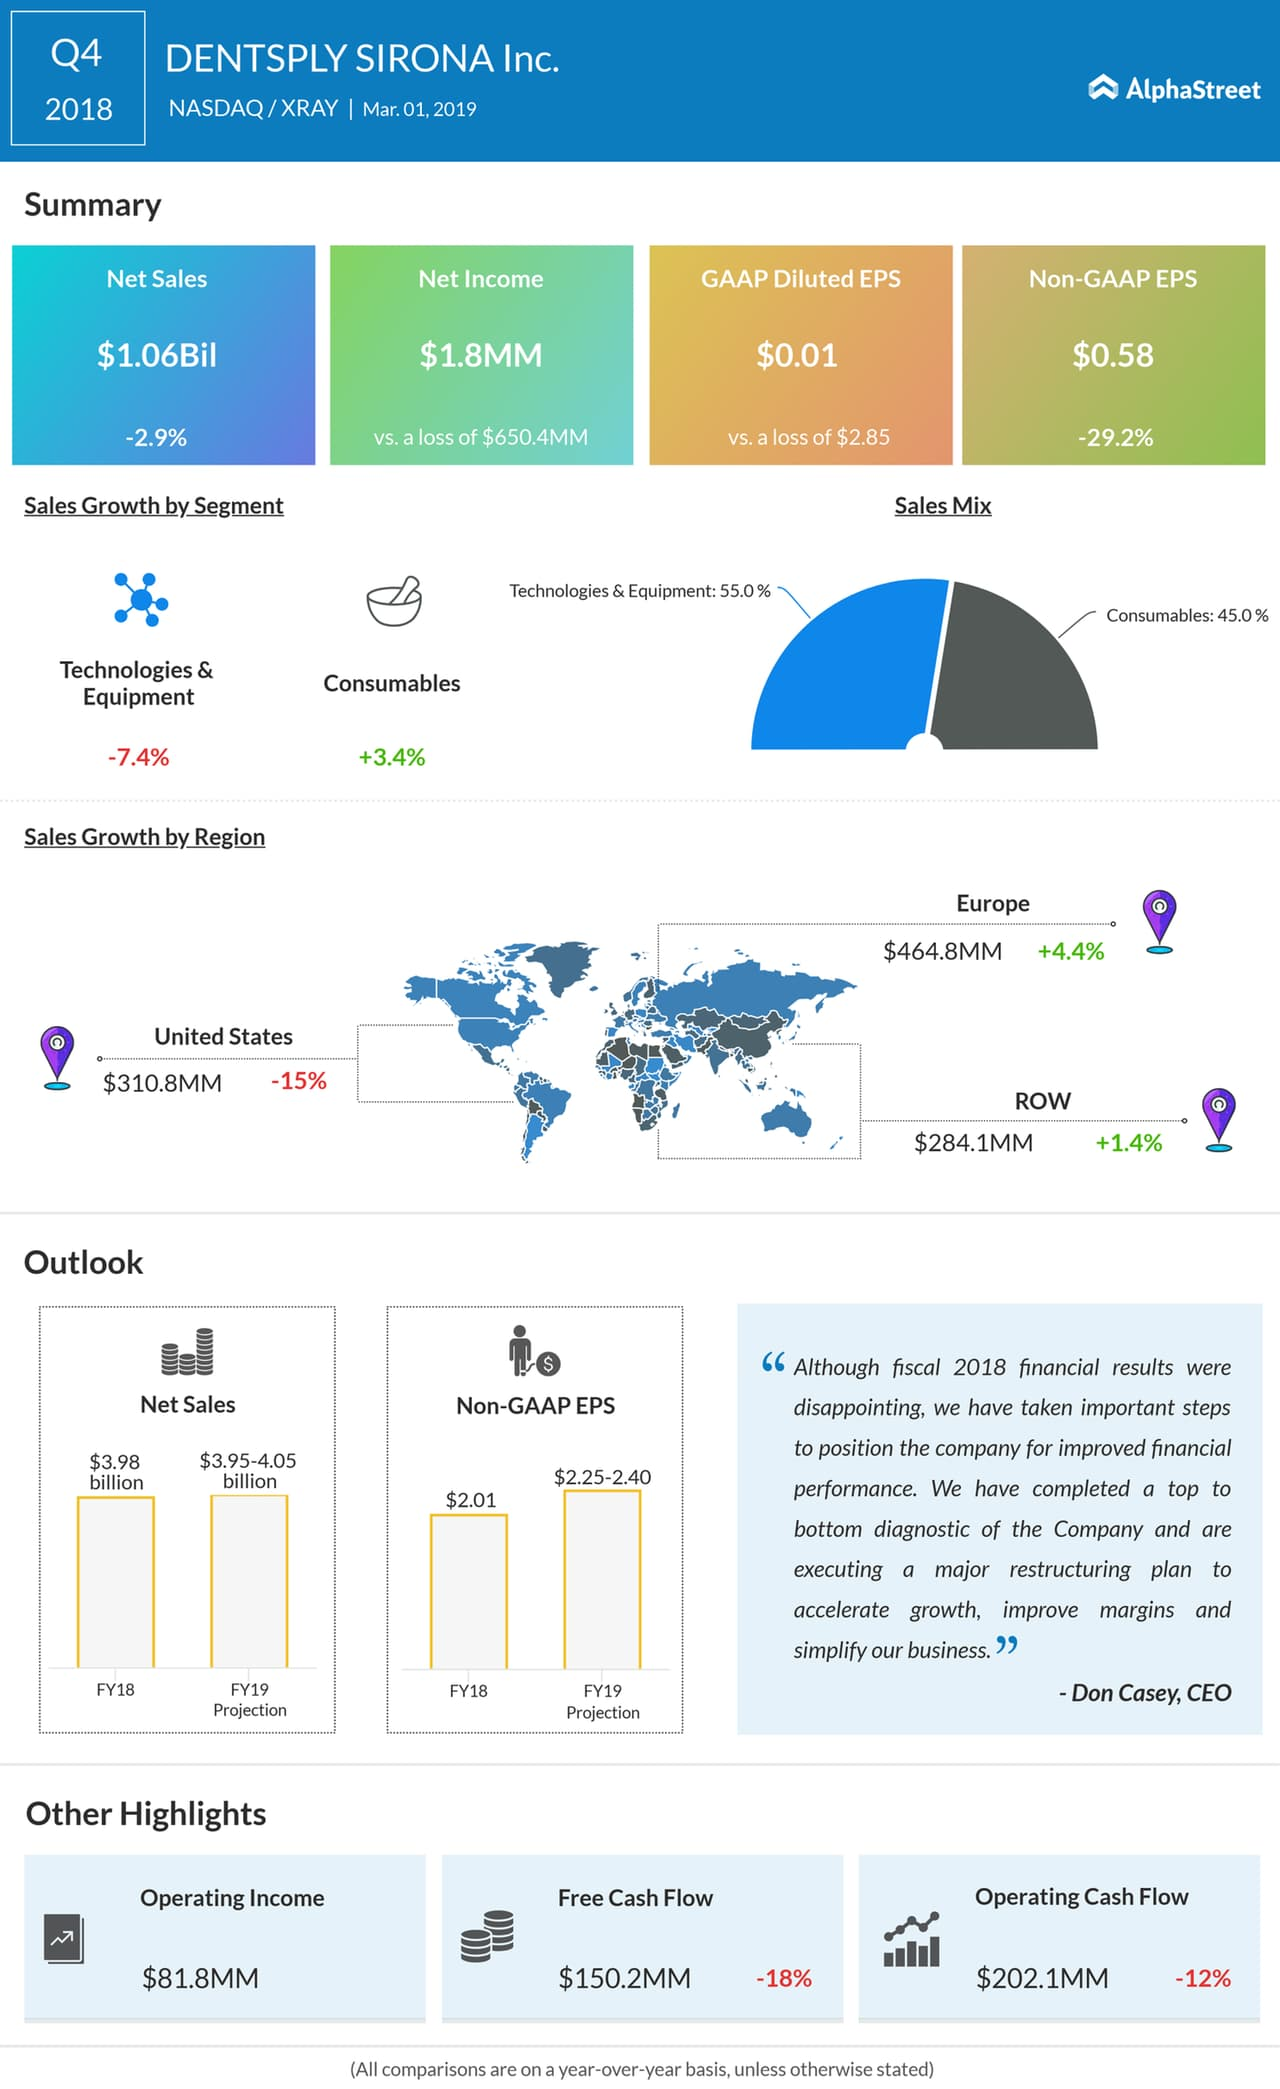 An infographic on DENTSPLY SIRONA's fourth quarter 2018 earnings results